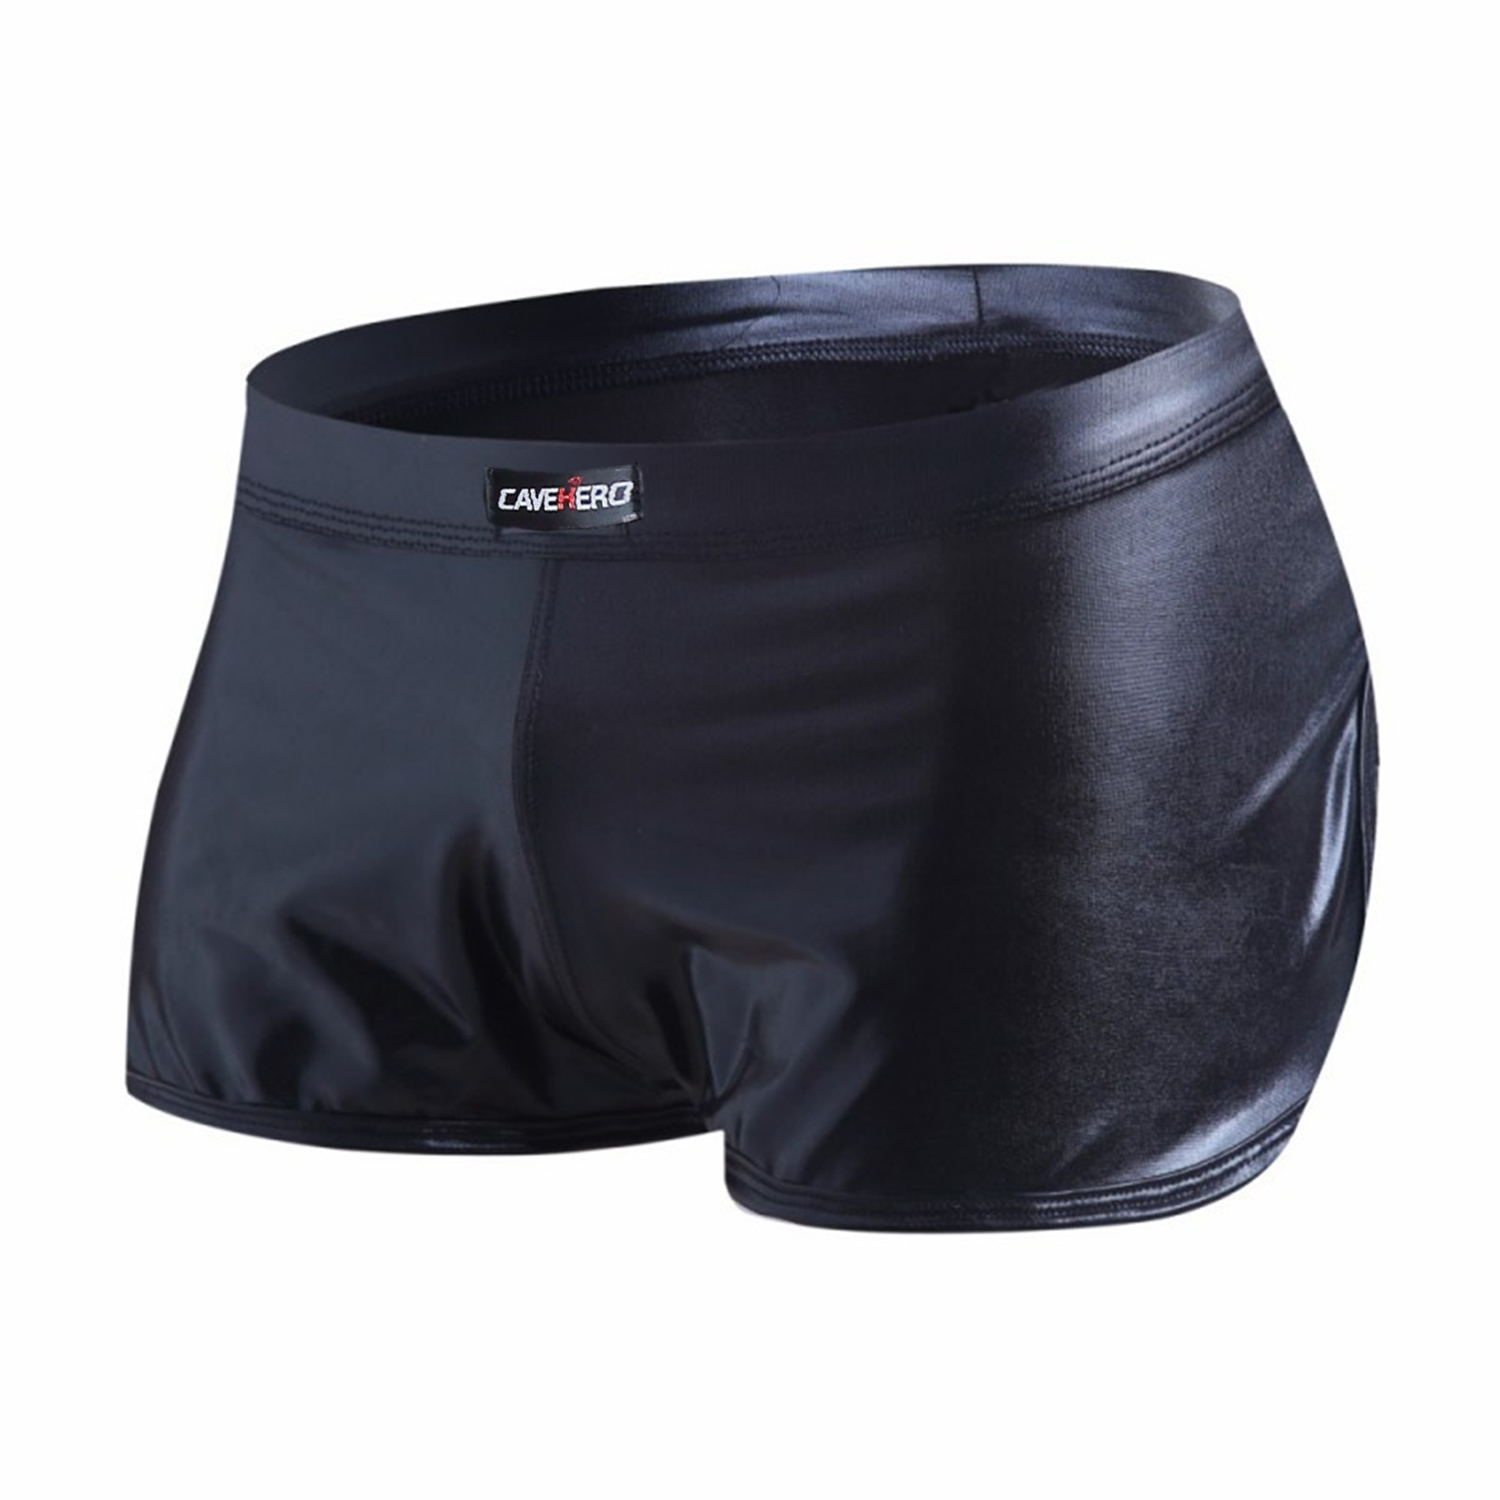 Faux Leather Mens Shorts Gym Clothing Men Shorts Hot Pants Sport Shiny Shorts Fitness Men Clothes Short Pants Men